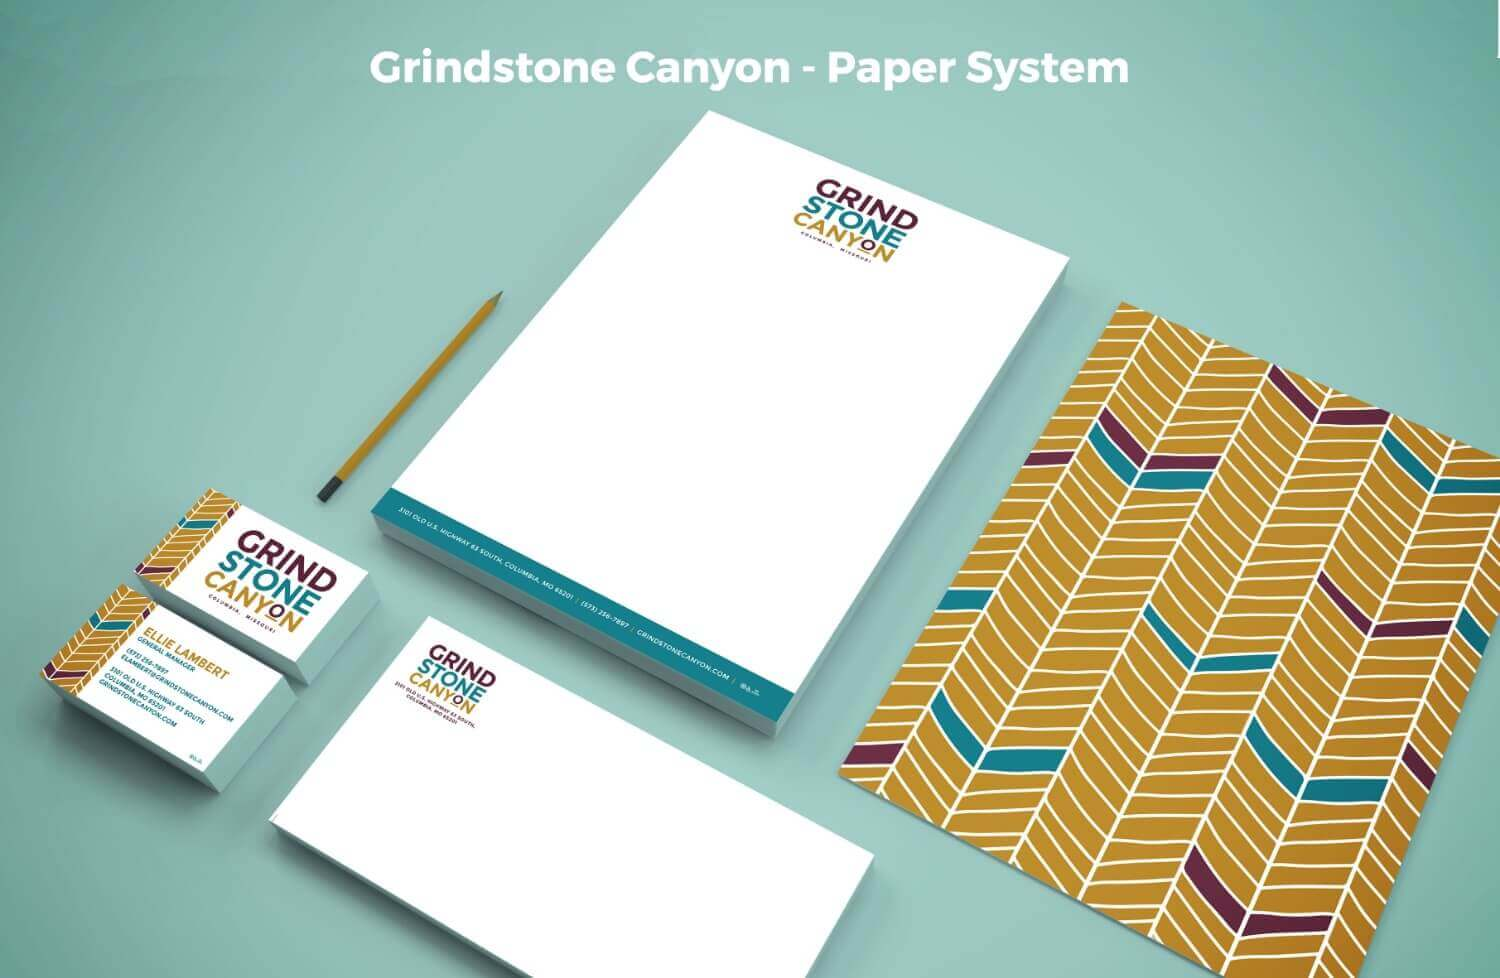 Grindstone Canyon Paper System